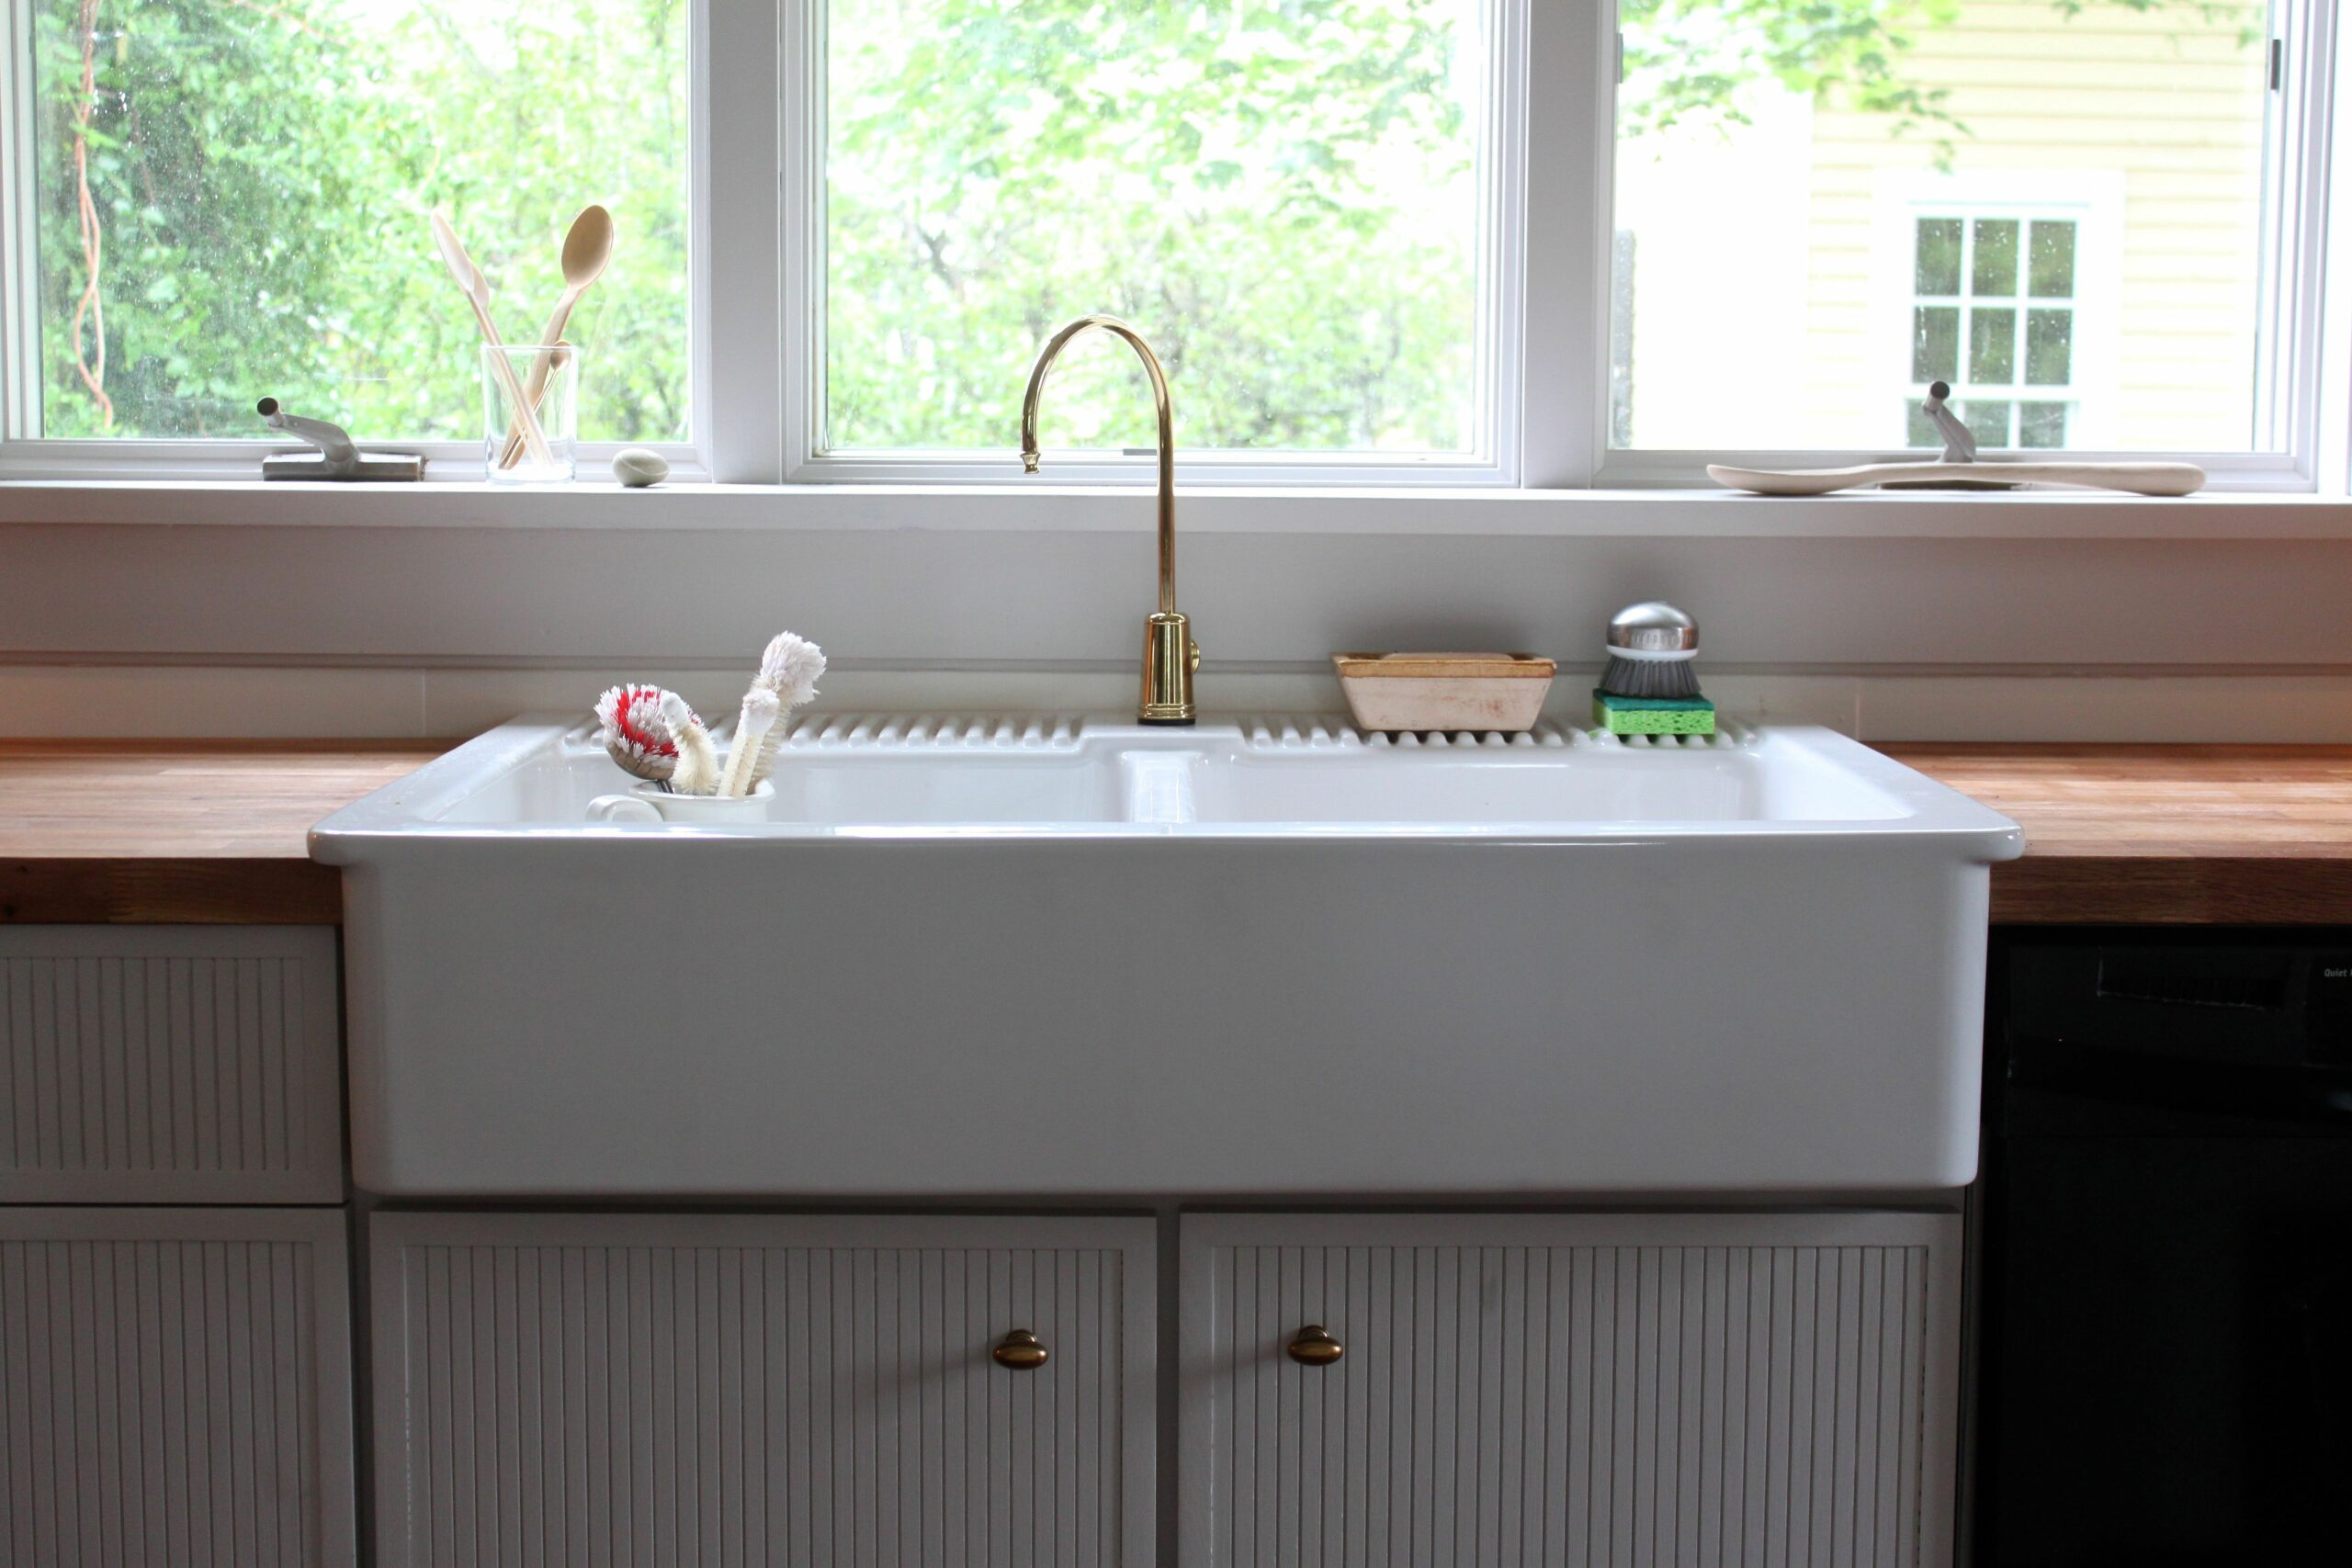 Best Kitchen Taps Uk 2020